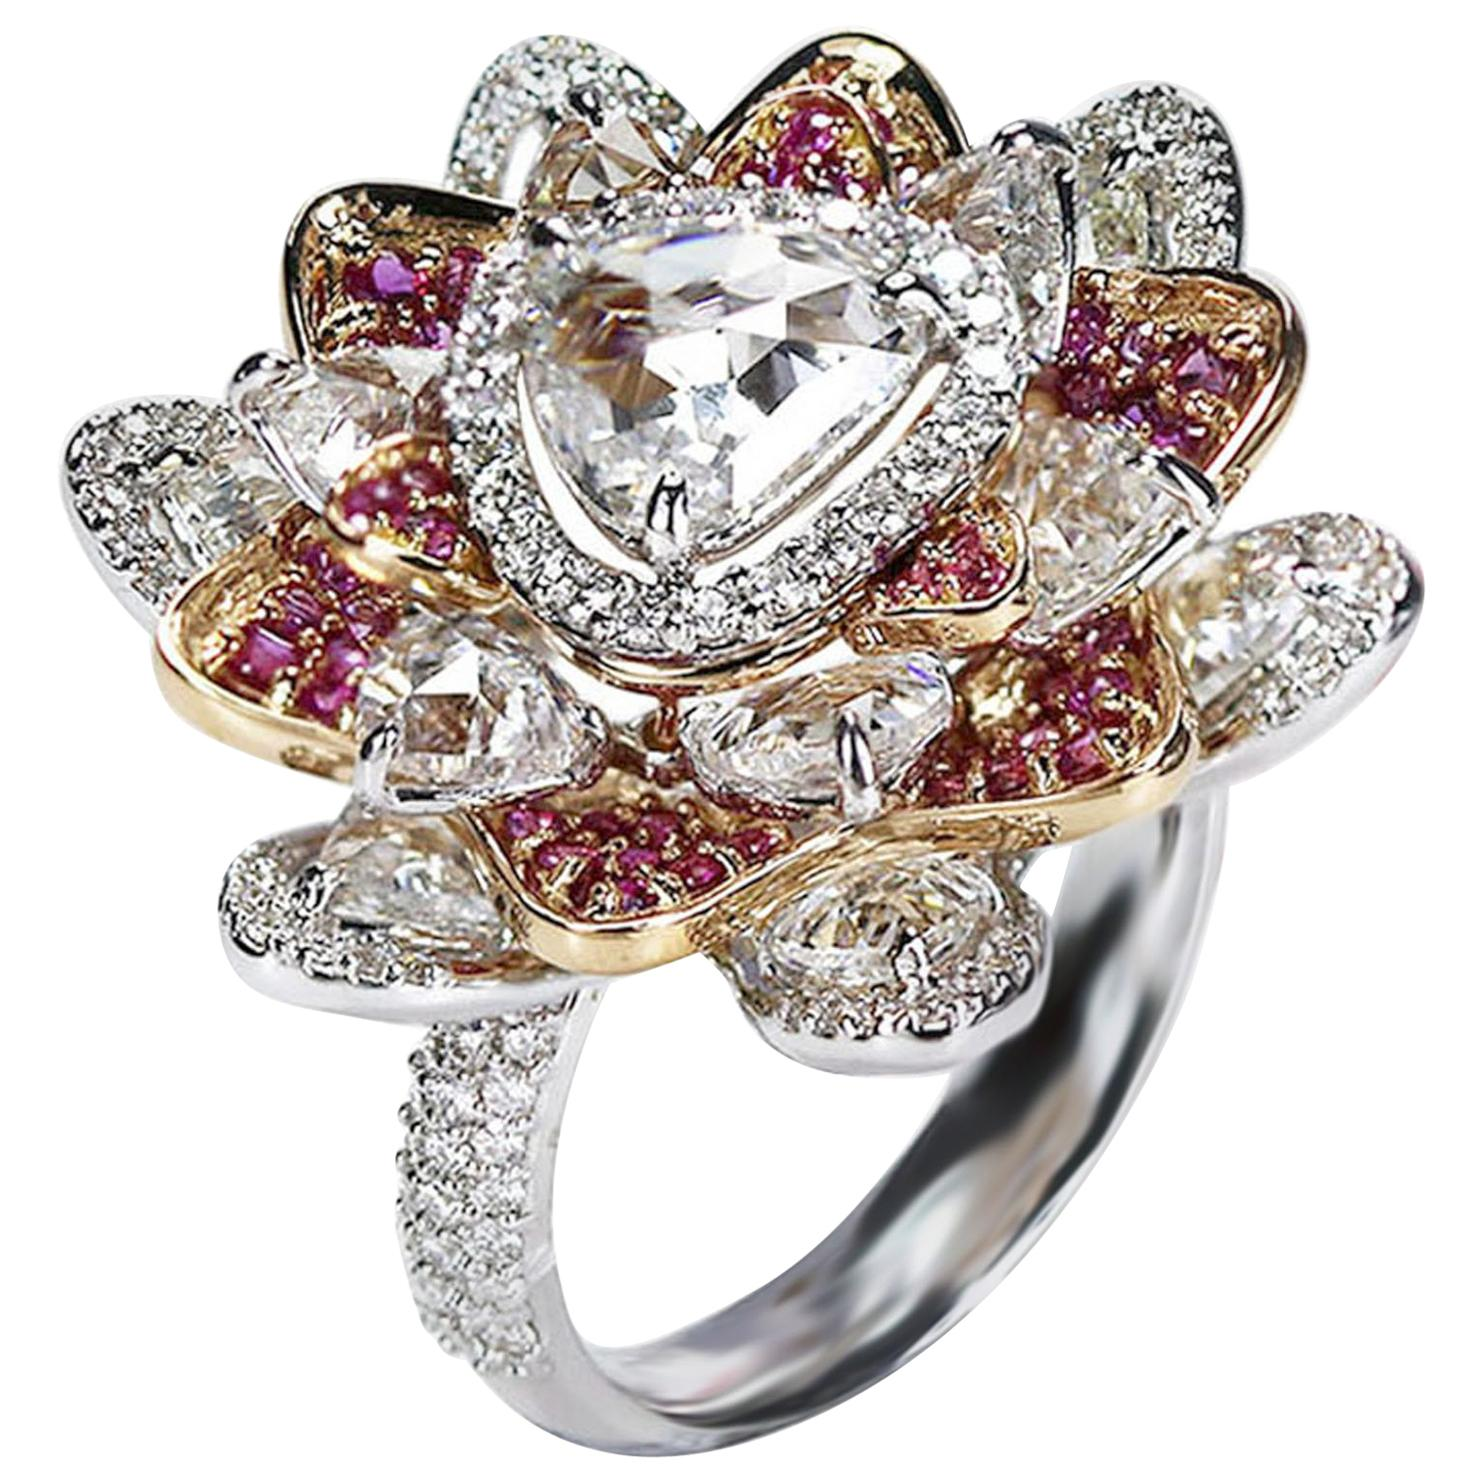 Antique Rings And Diamond Rings 37 866 For Sale At 1stdibs